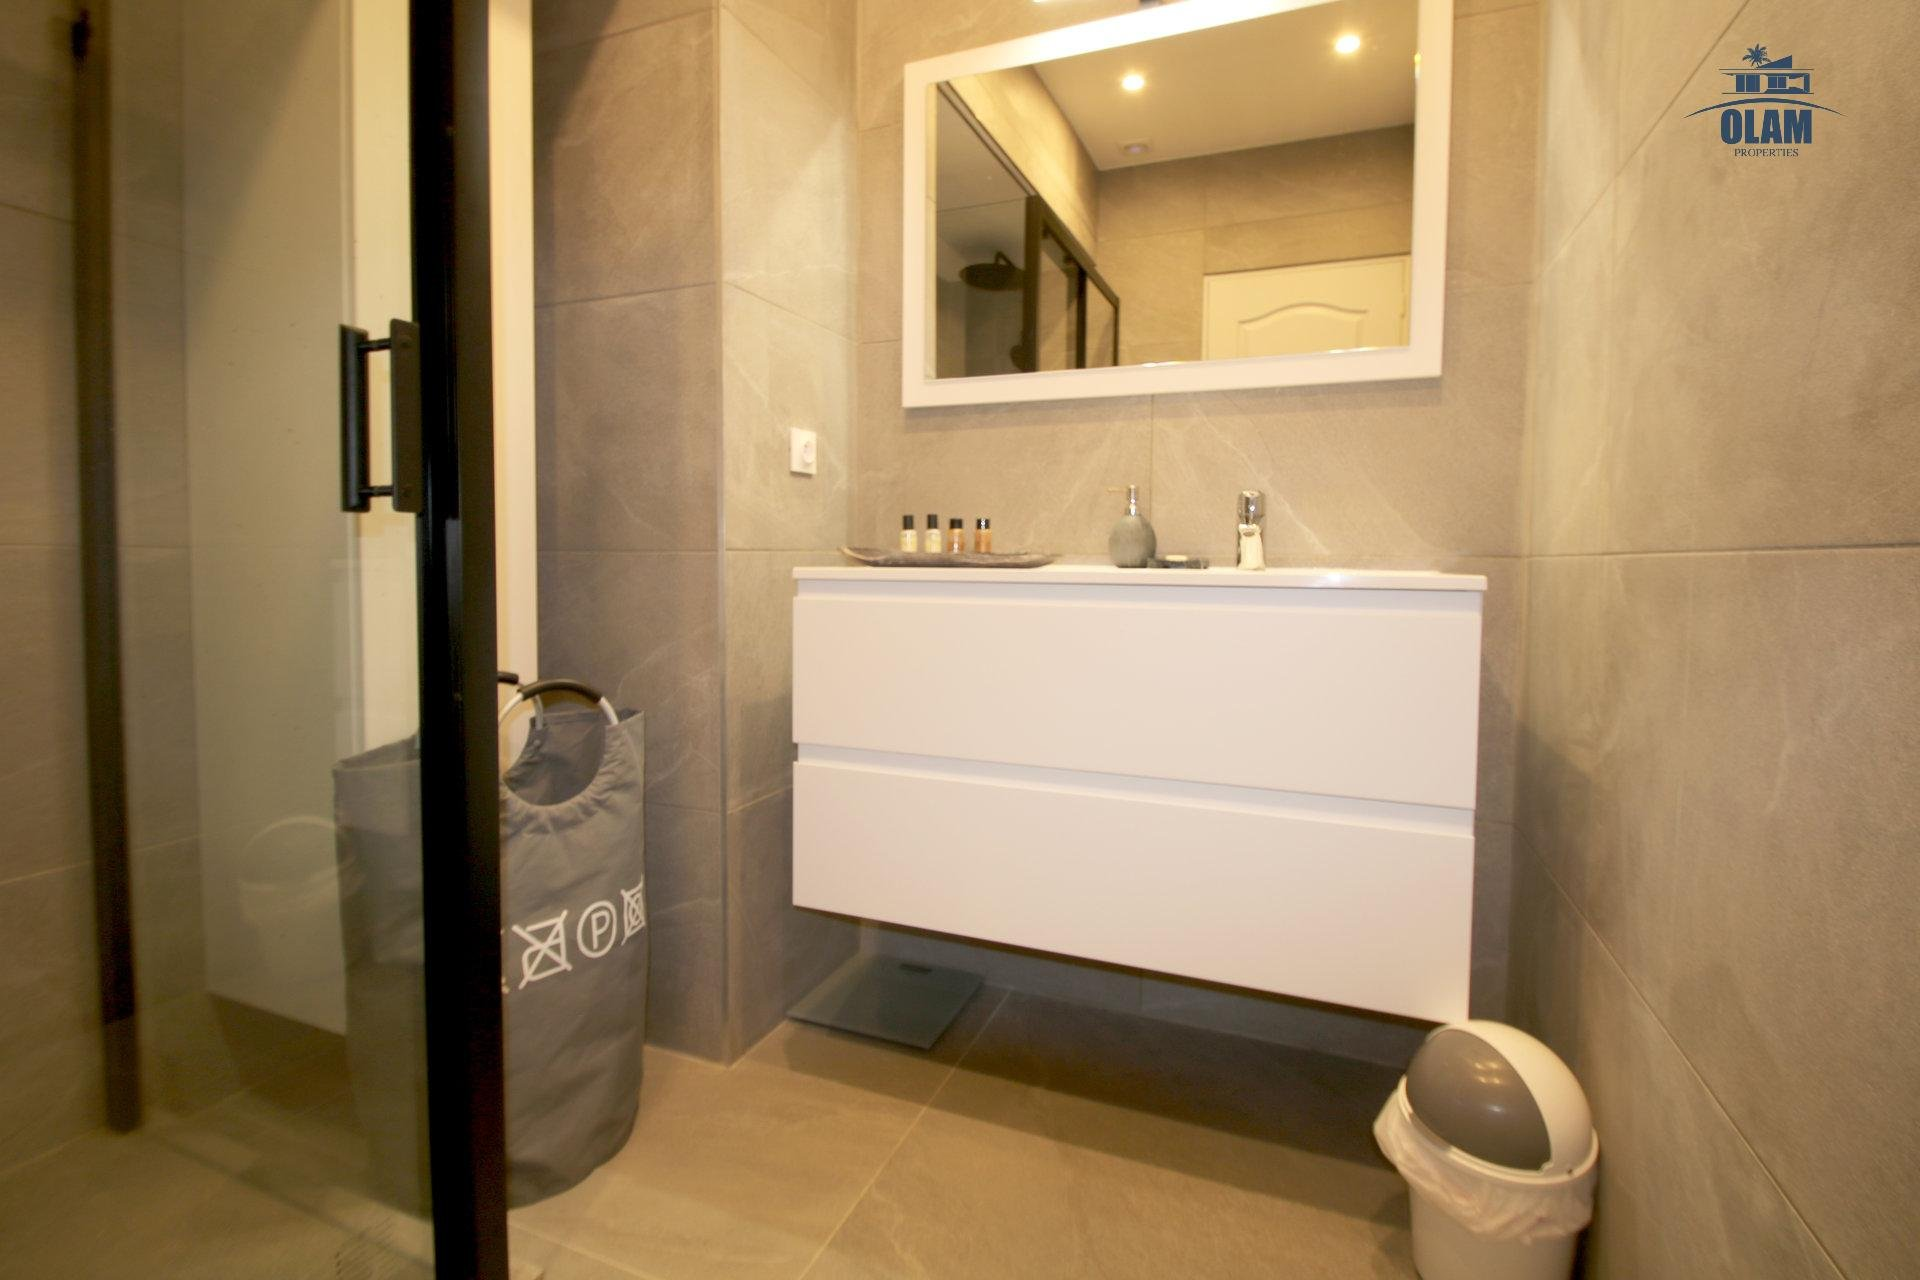 Shower room, Cannes, Seasonal rental, Croisette, French Riviera